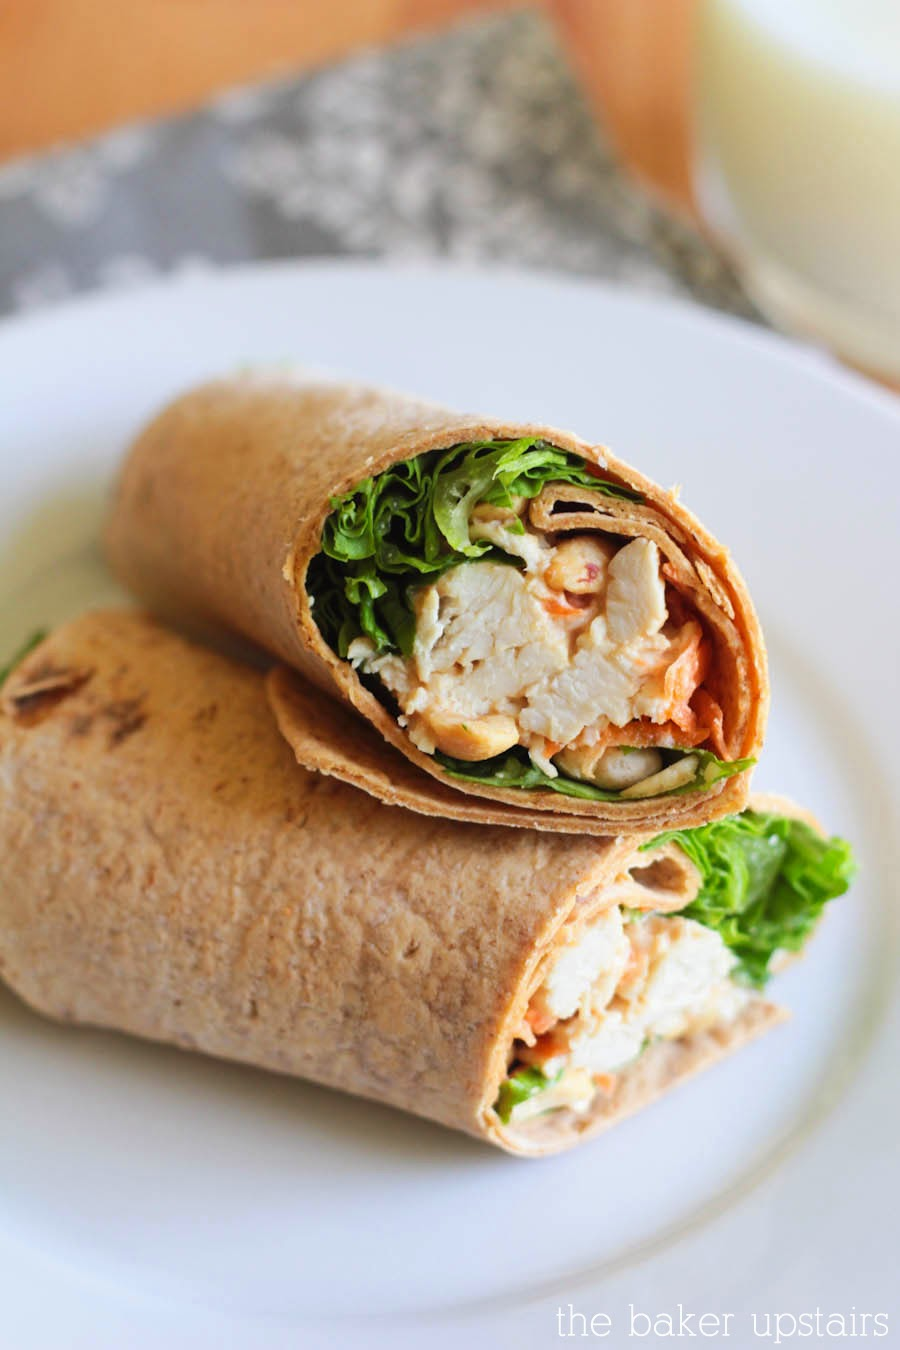 the baker upstairs: thai chicken wraps